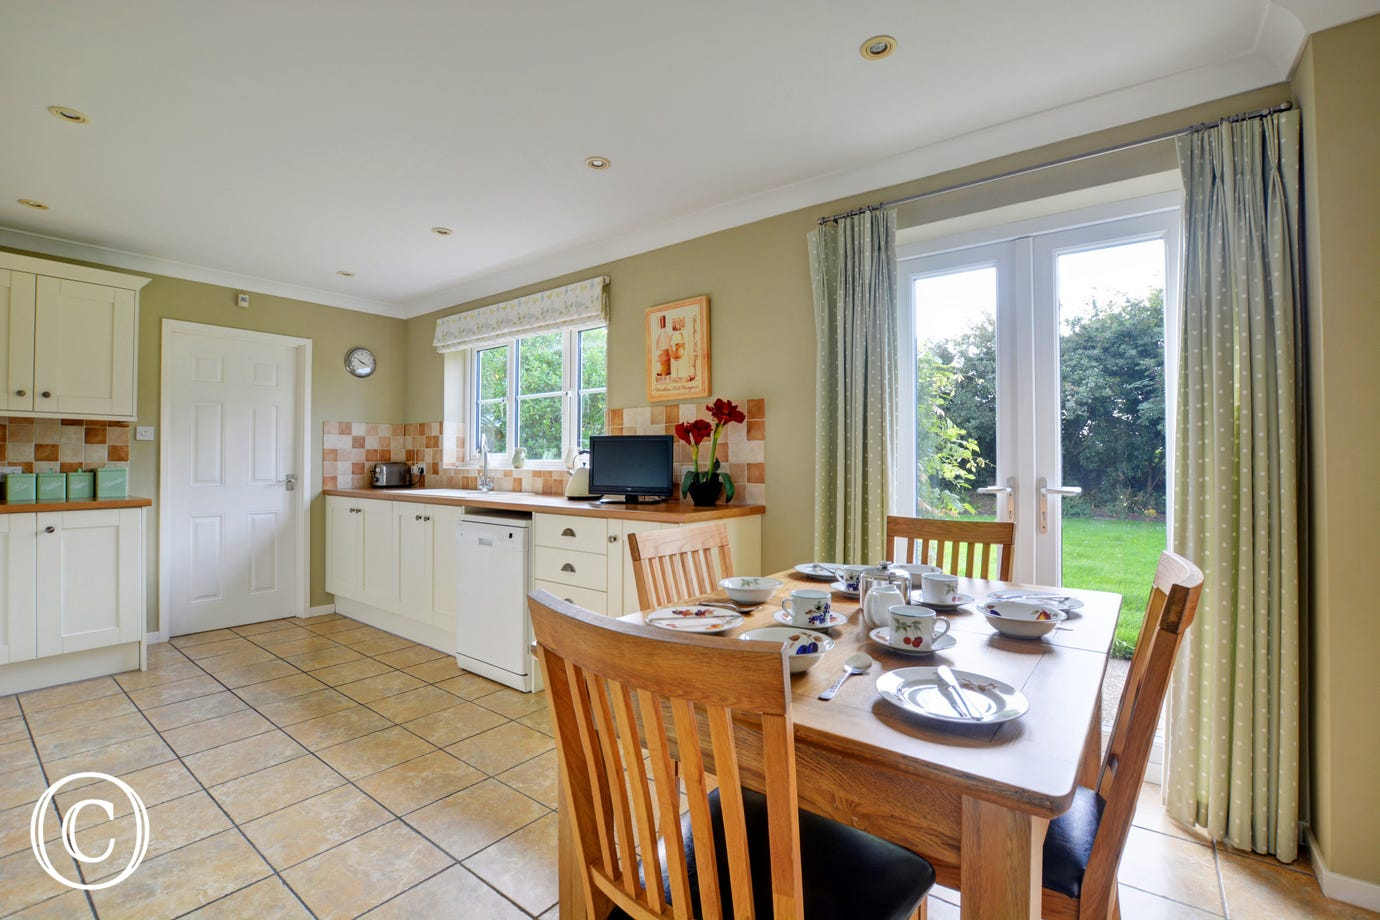 Light, bright and spacious kitchen with most major appliances, well equipped and an additional table and chairs for dining